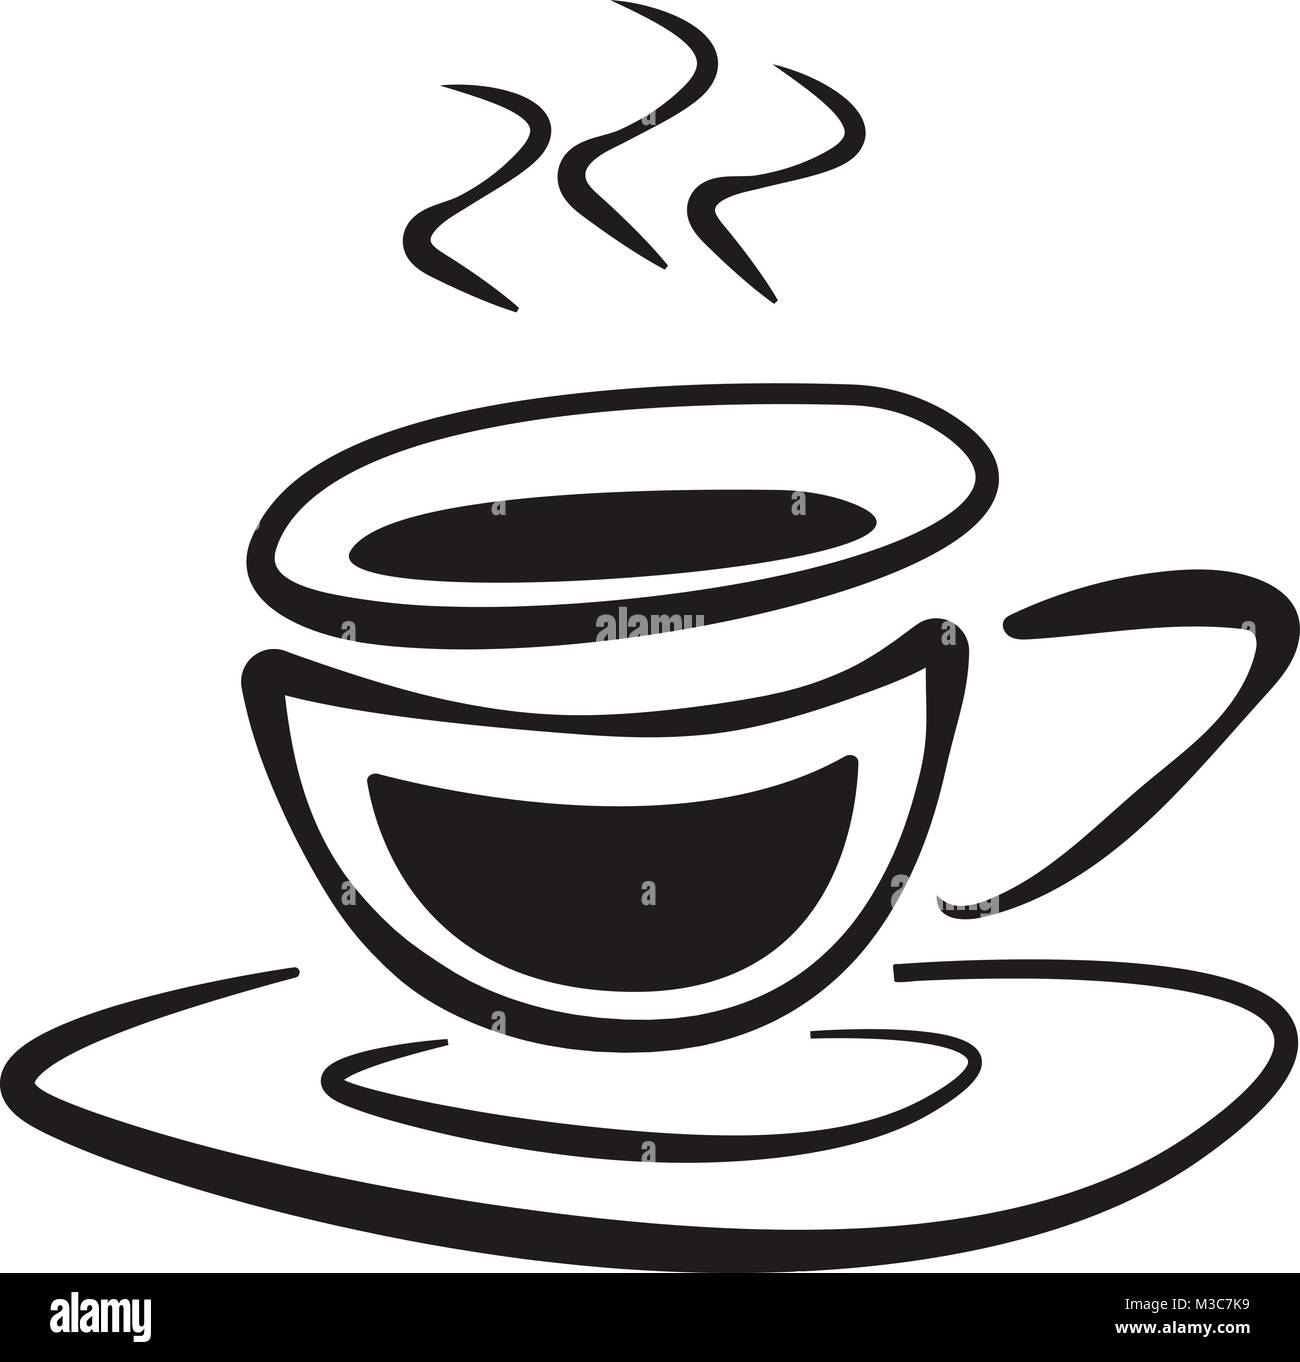 Cup Of Coffee With Saucer Doodle Drawing Vector Icon Stock Vector Image Art Alamy